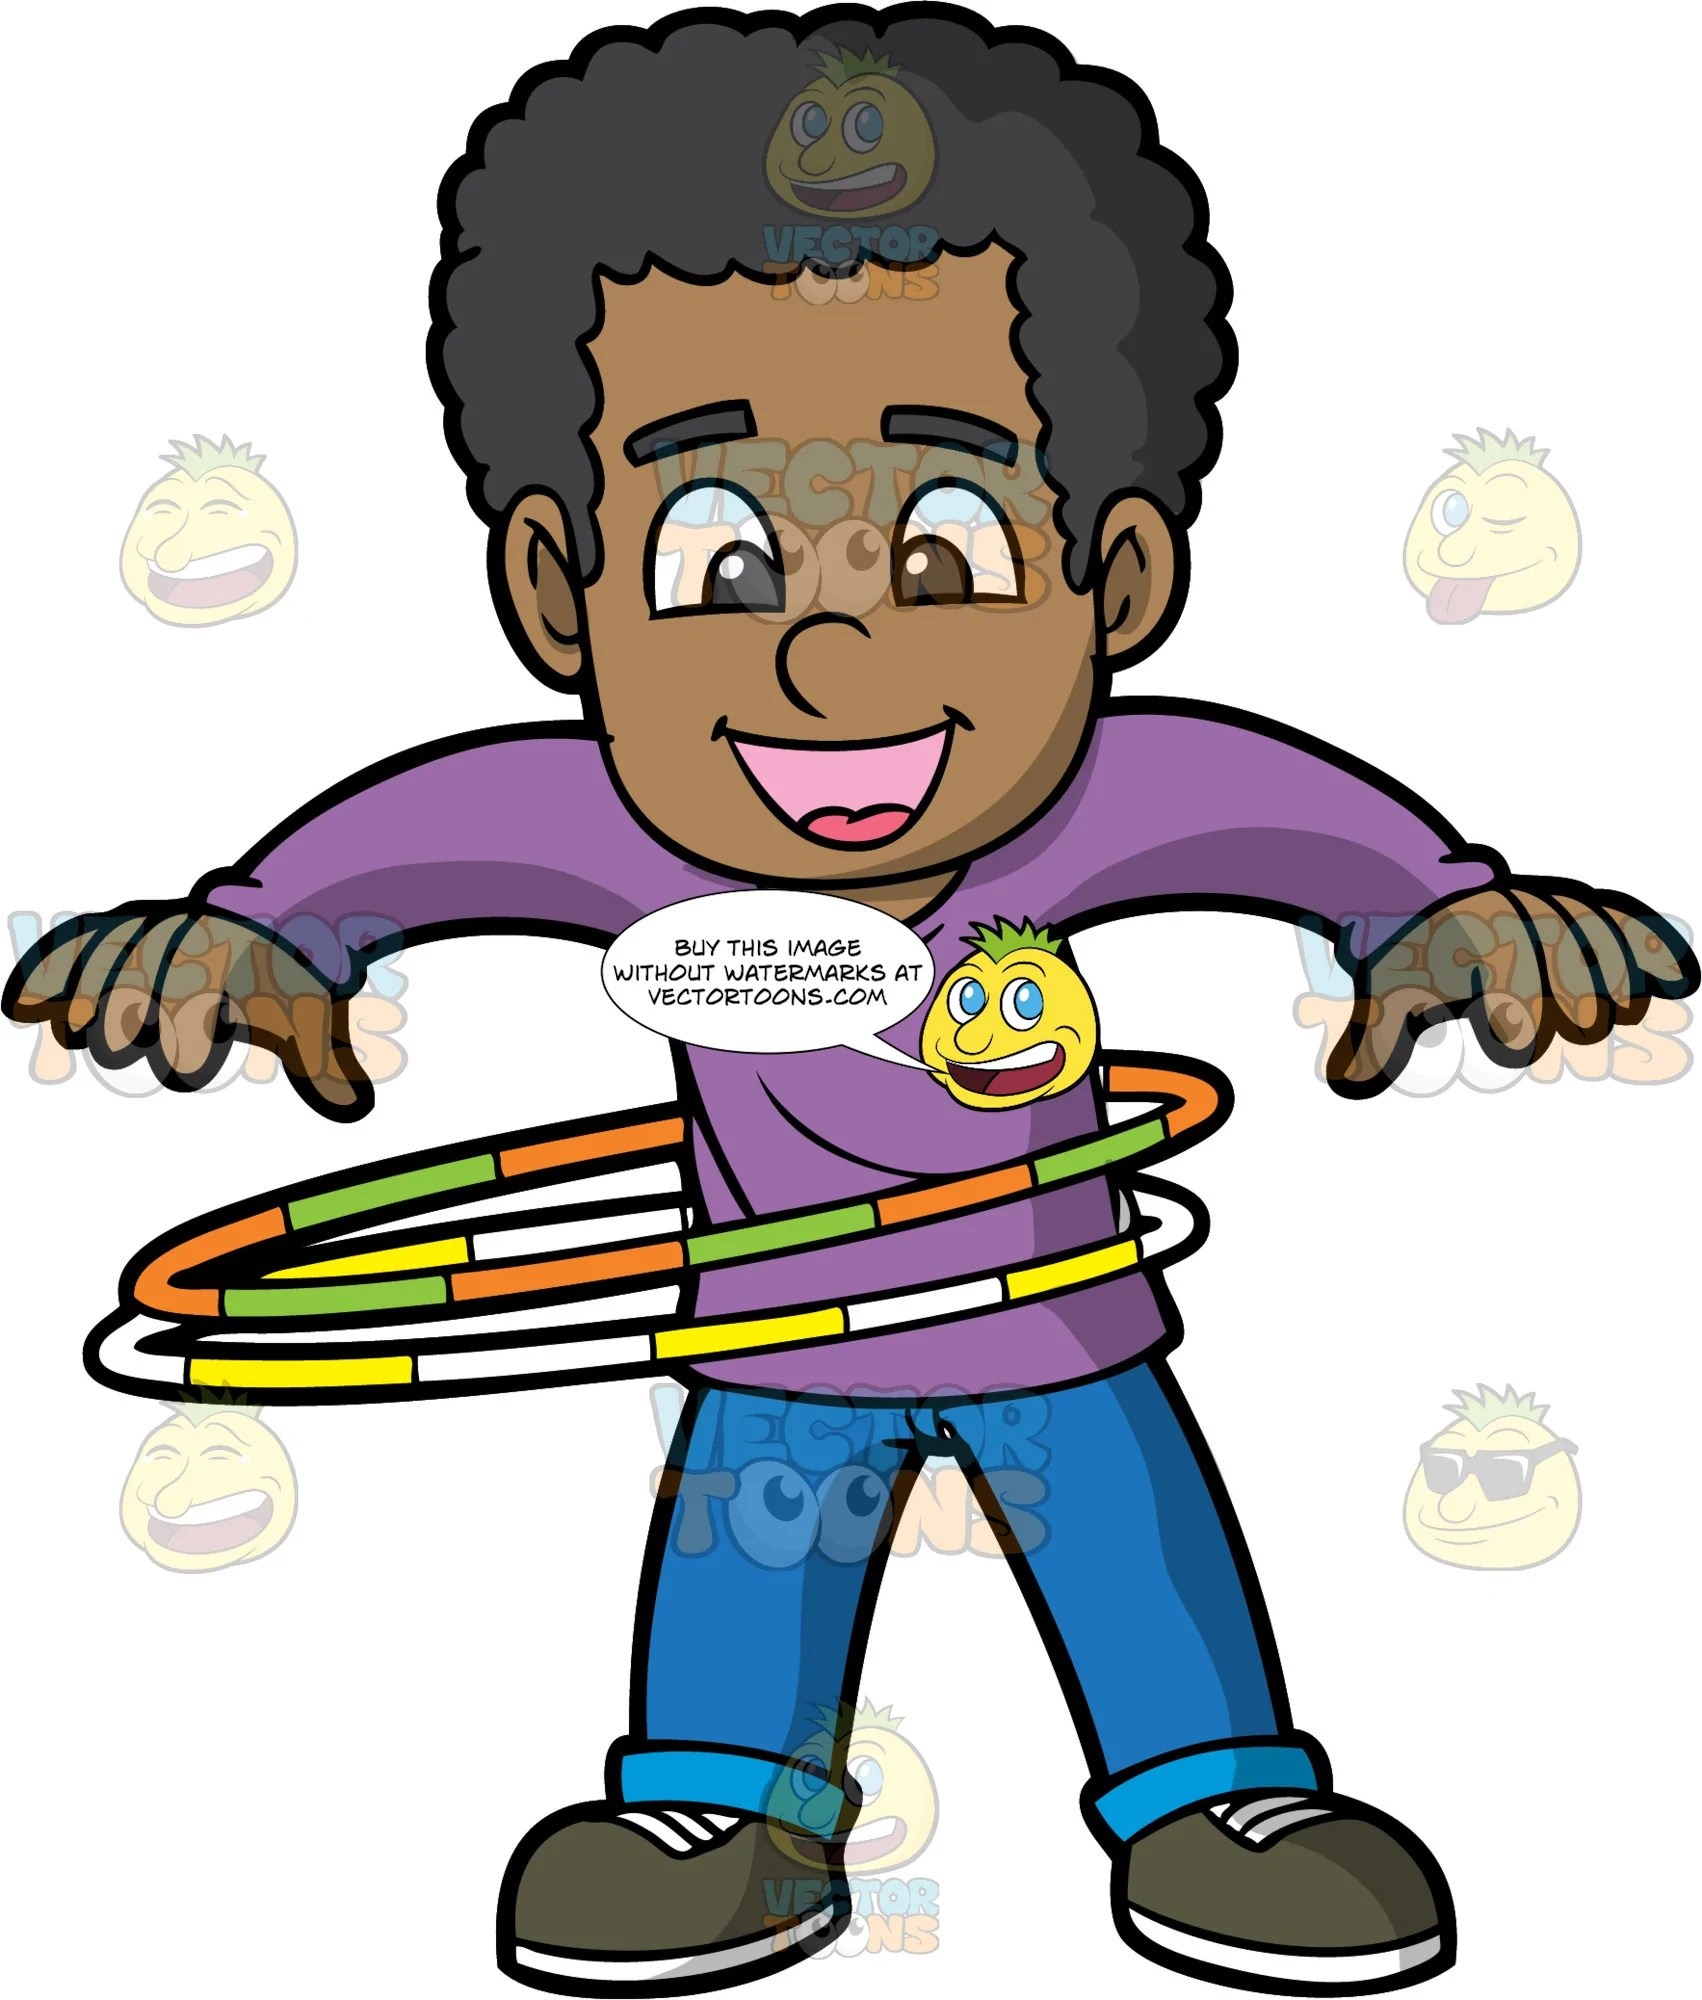 small resolution of a black boy spinning two hula hoops a black boy with curly hair wearing